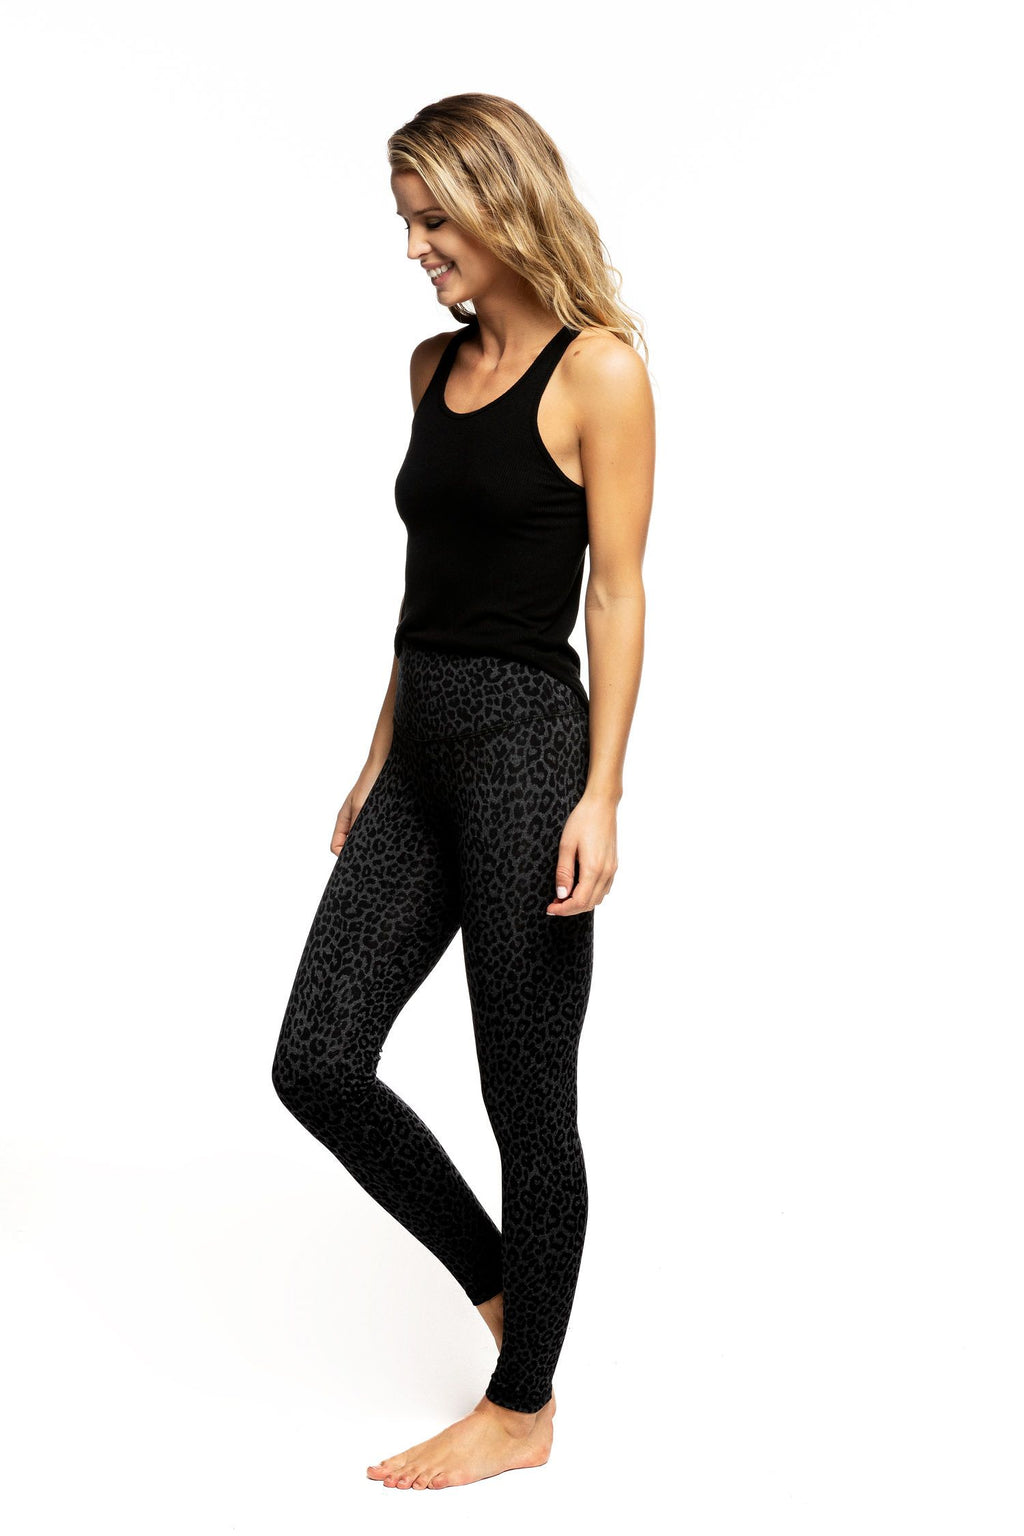 Strut This Teagan Ankle Legging Grey Leopard